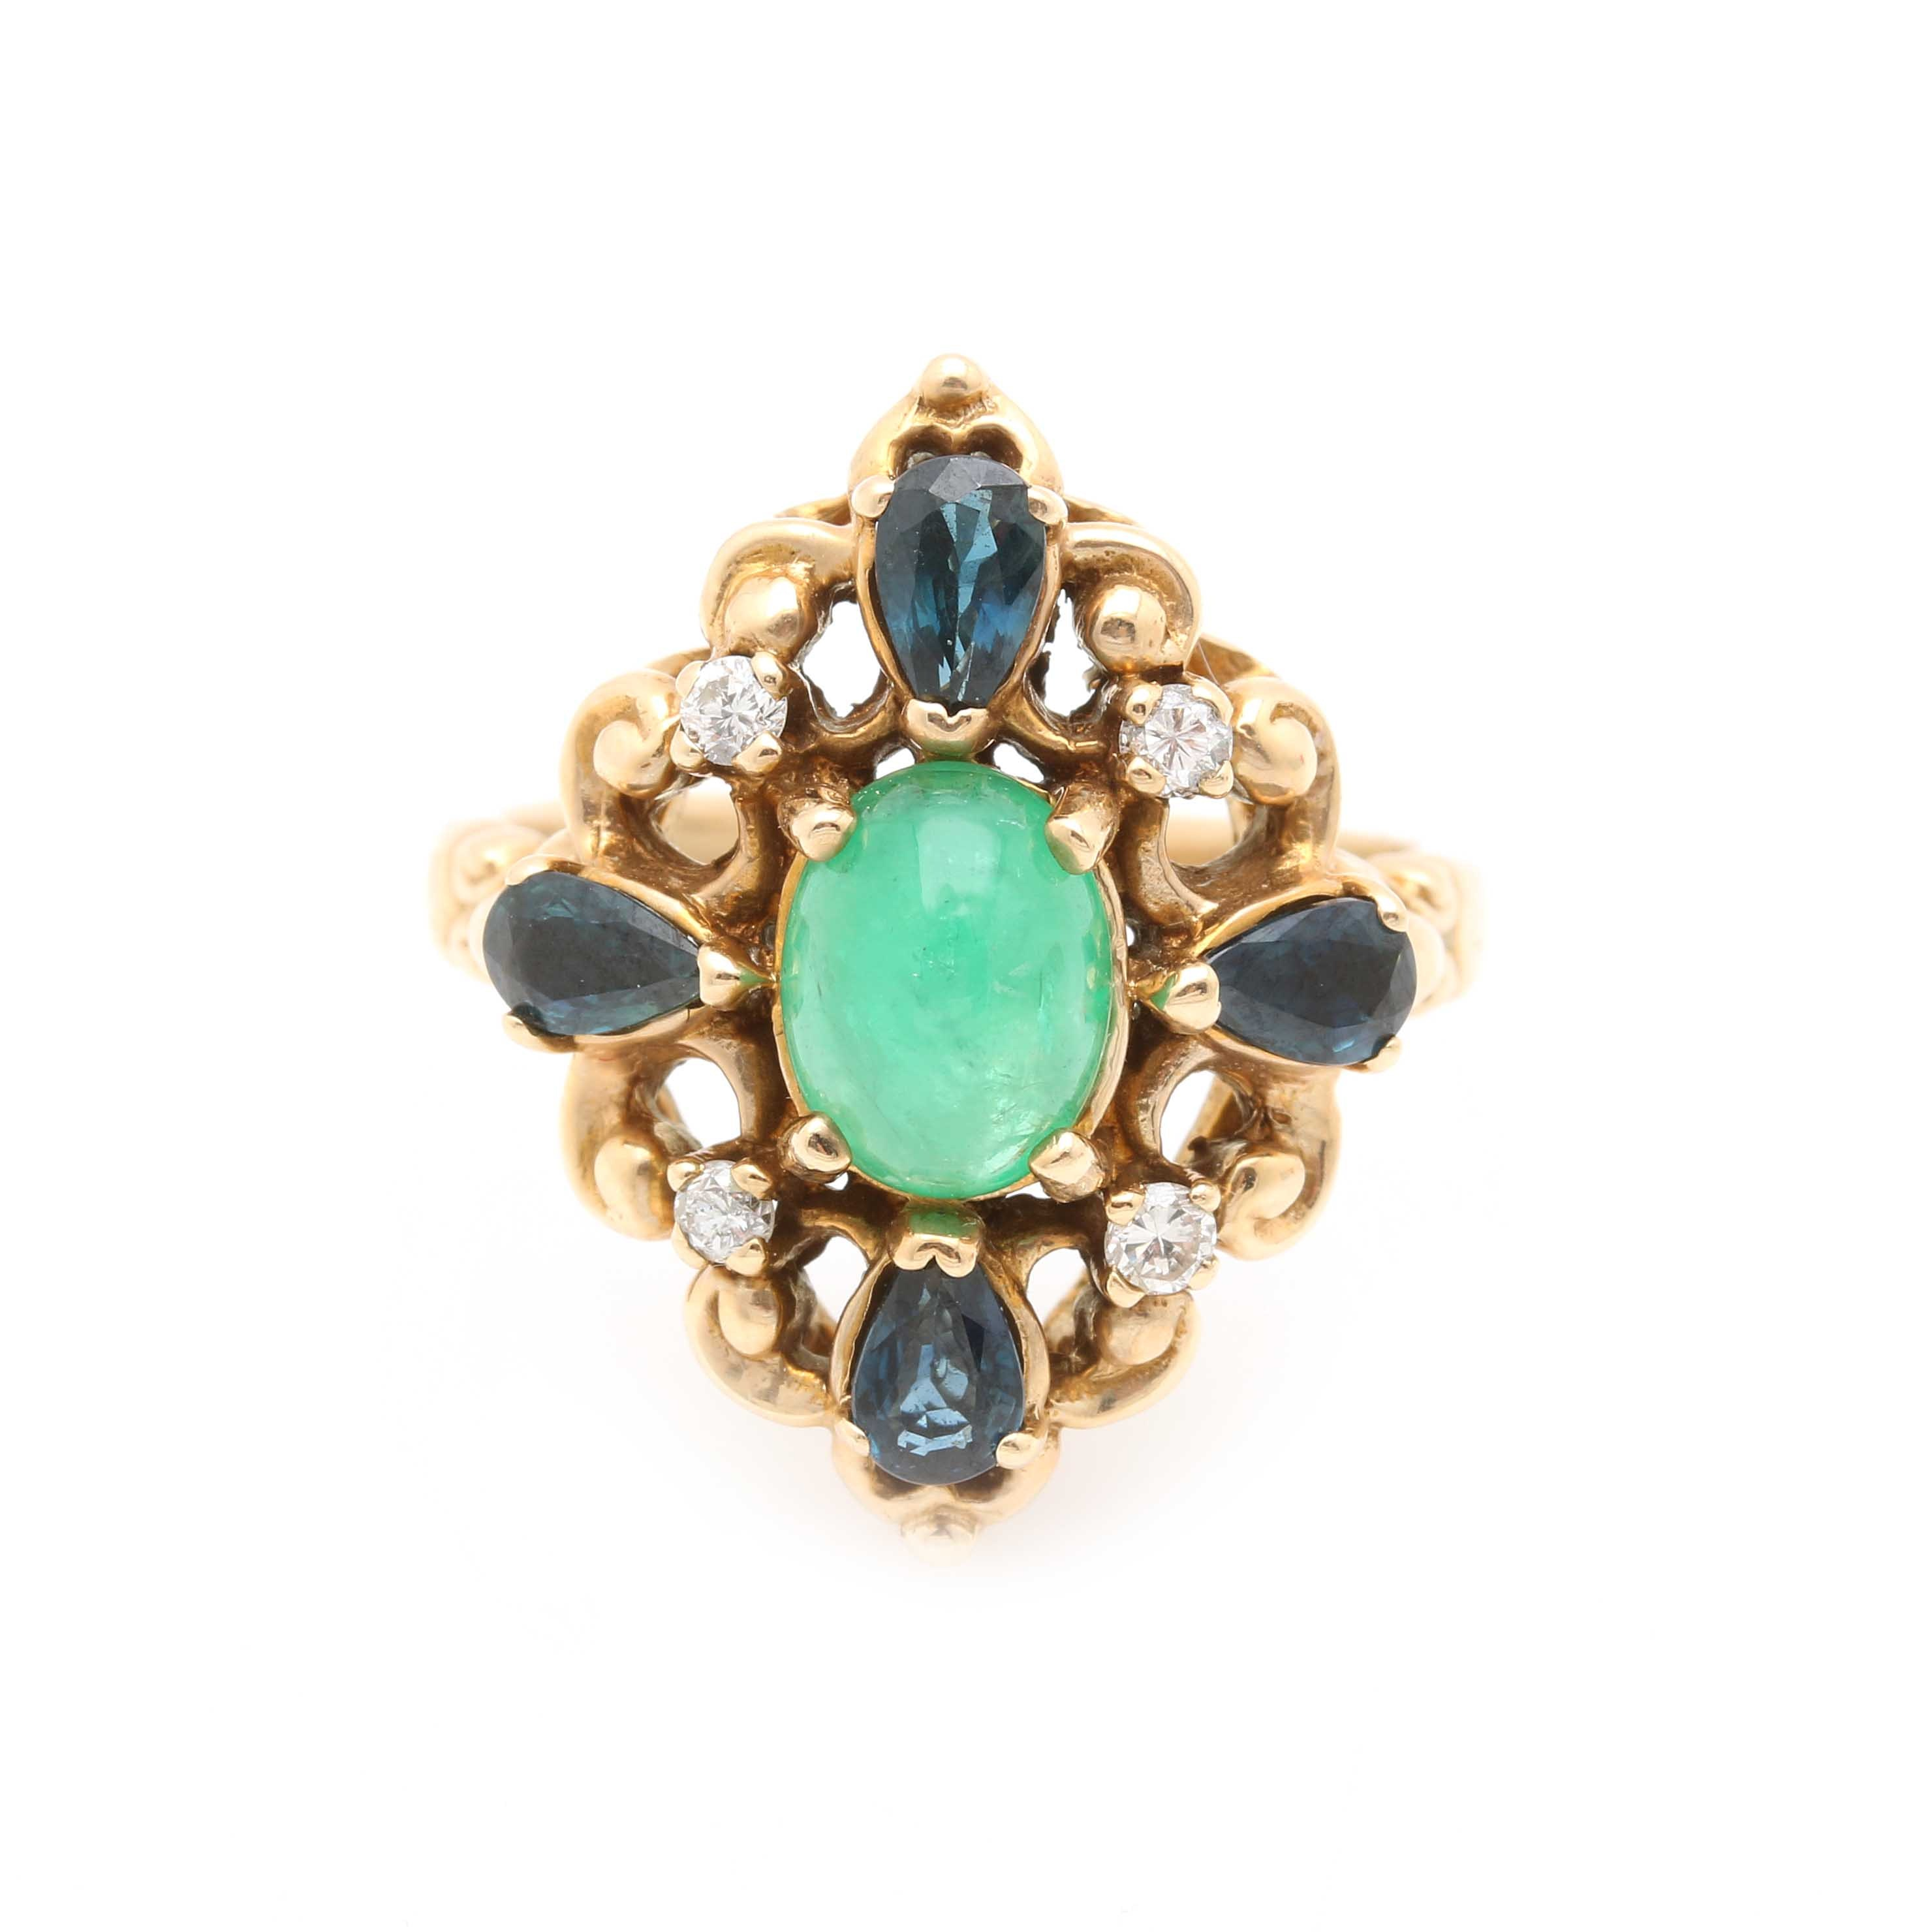 Vintage 14K Yellow Gold Emerald, Sapphire and Diamond Ring